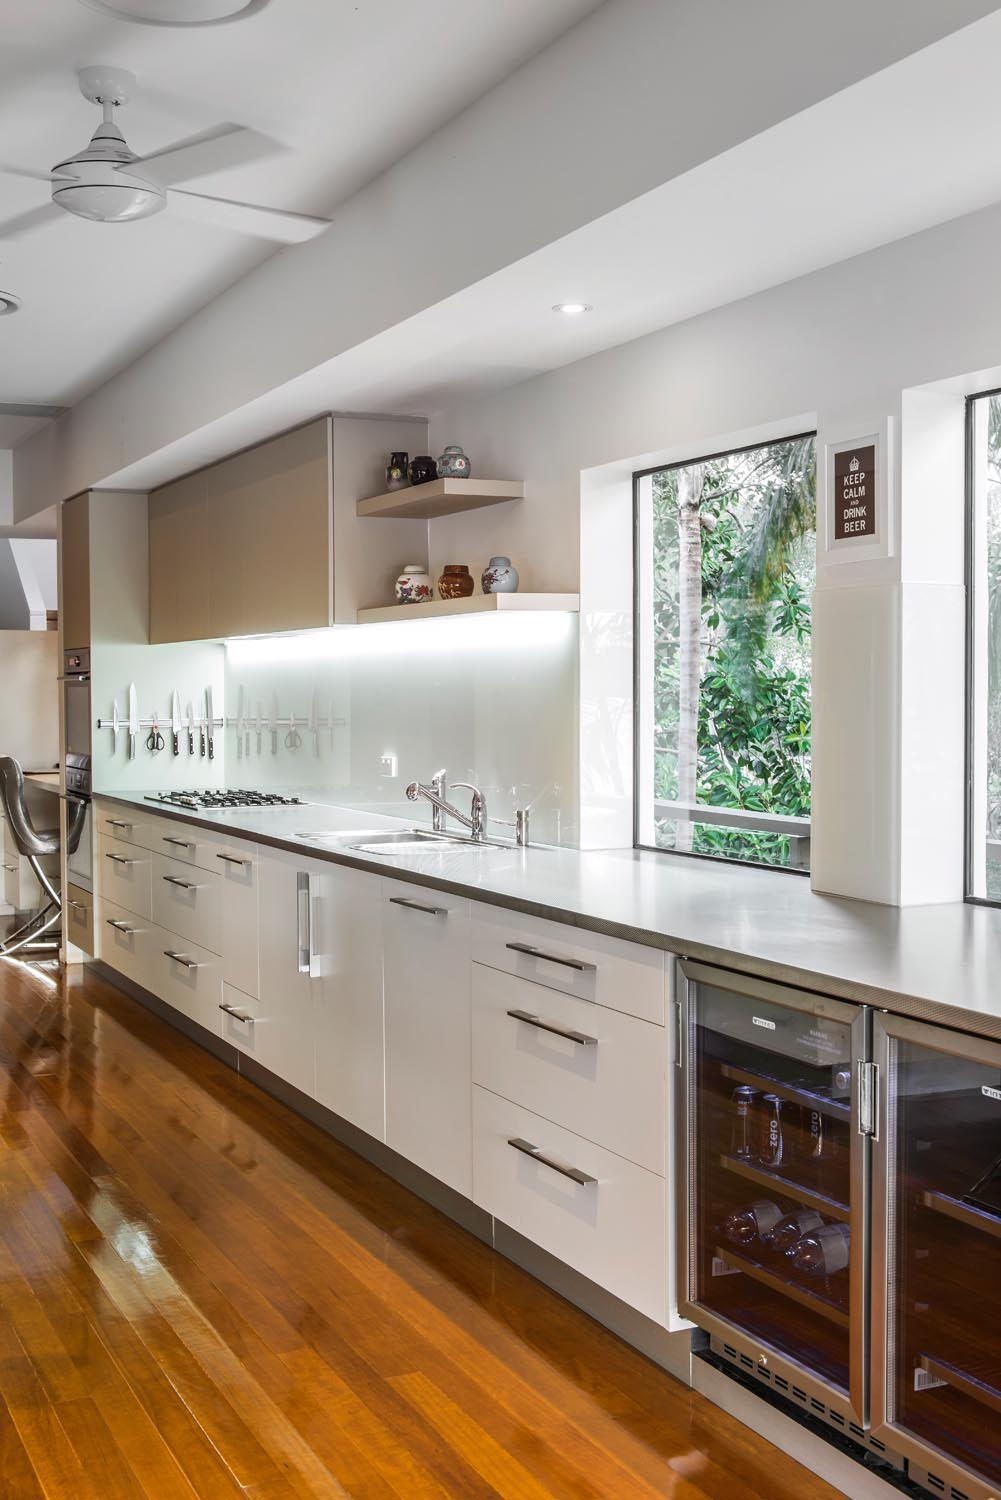 Functionality meets designer appeal in this contemporary kitchen